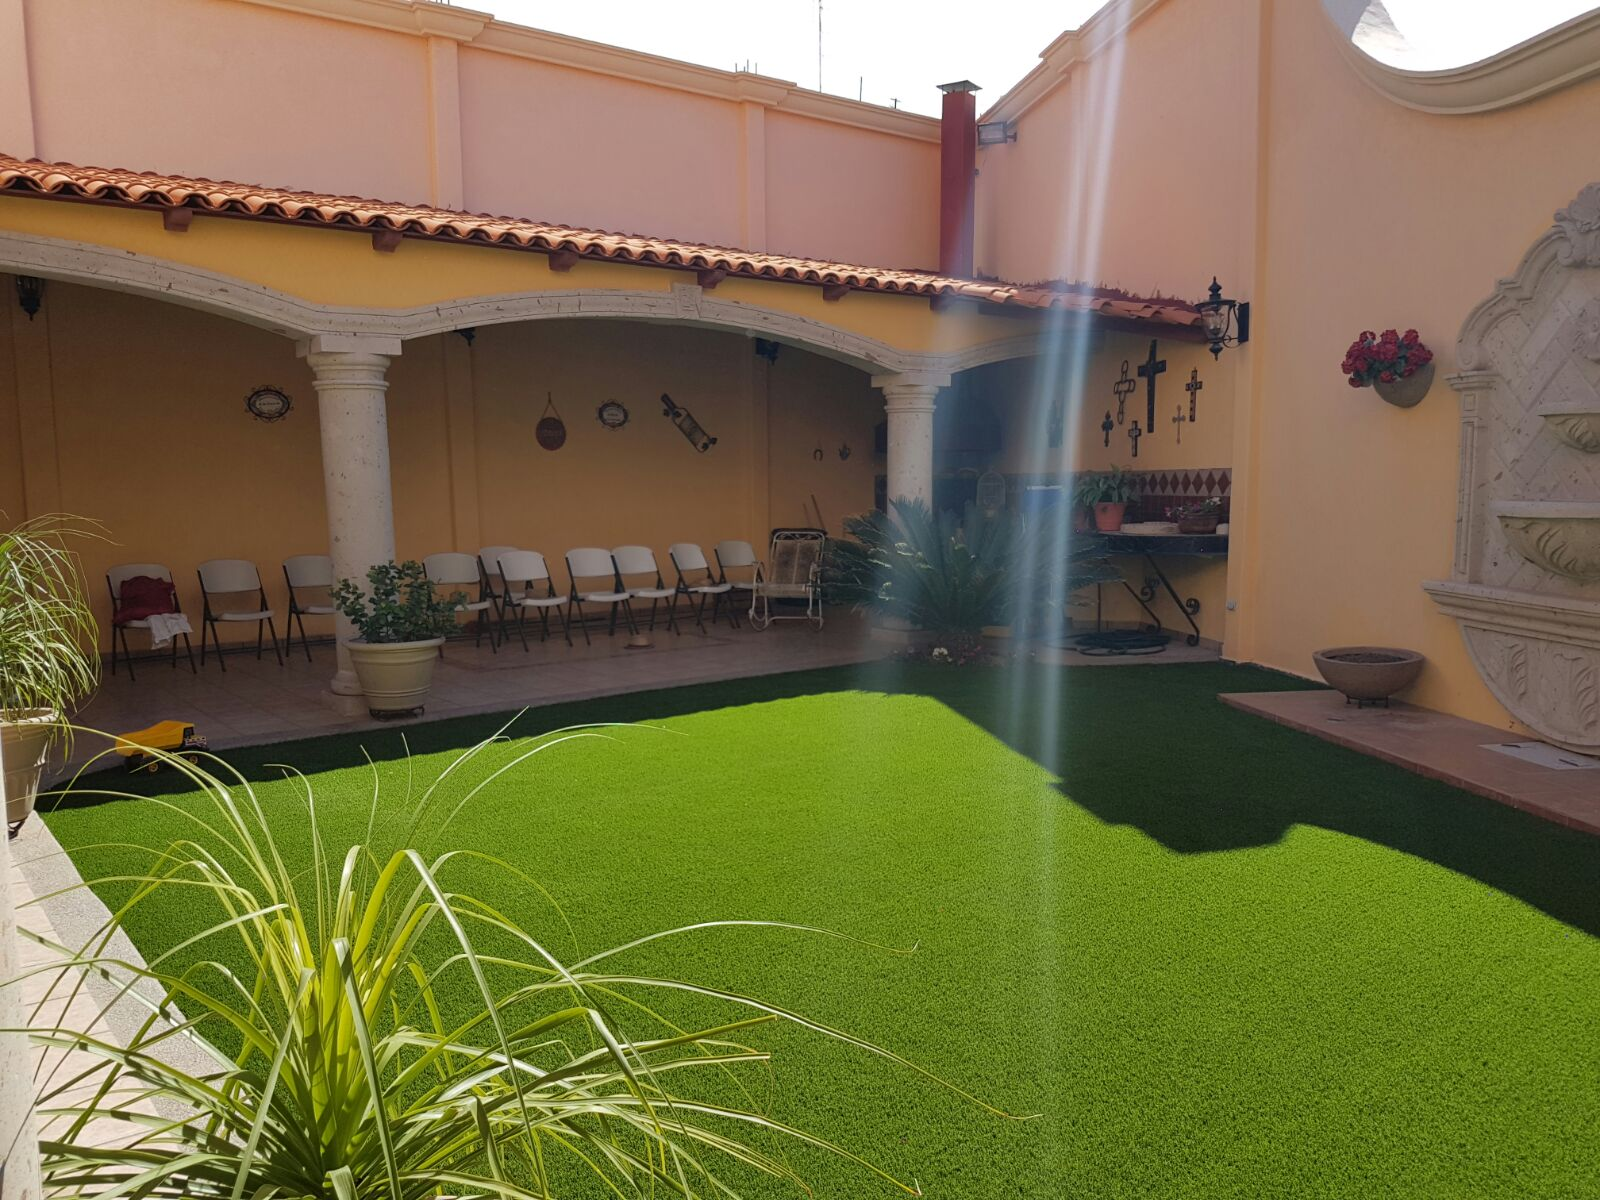 6 Reasons for choosing synthetic grass instead of natural grass